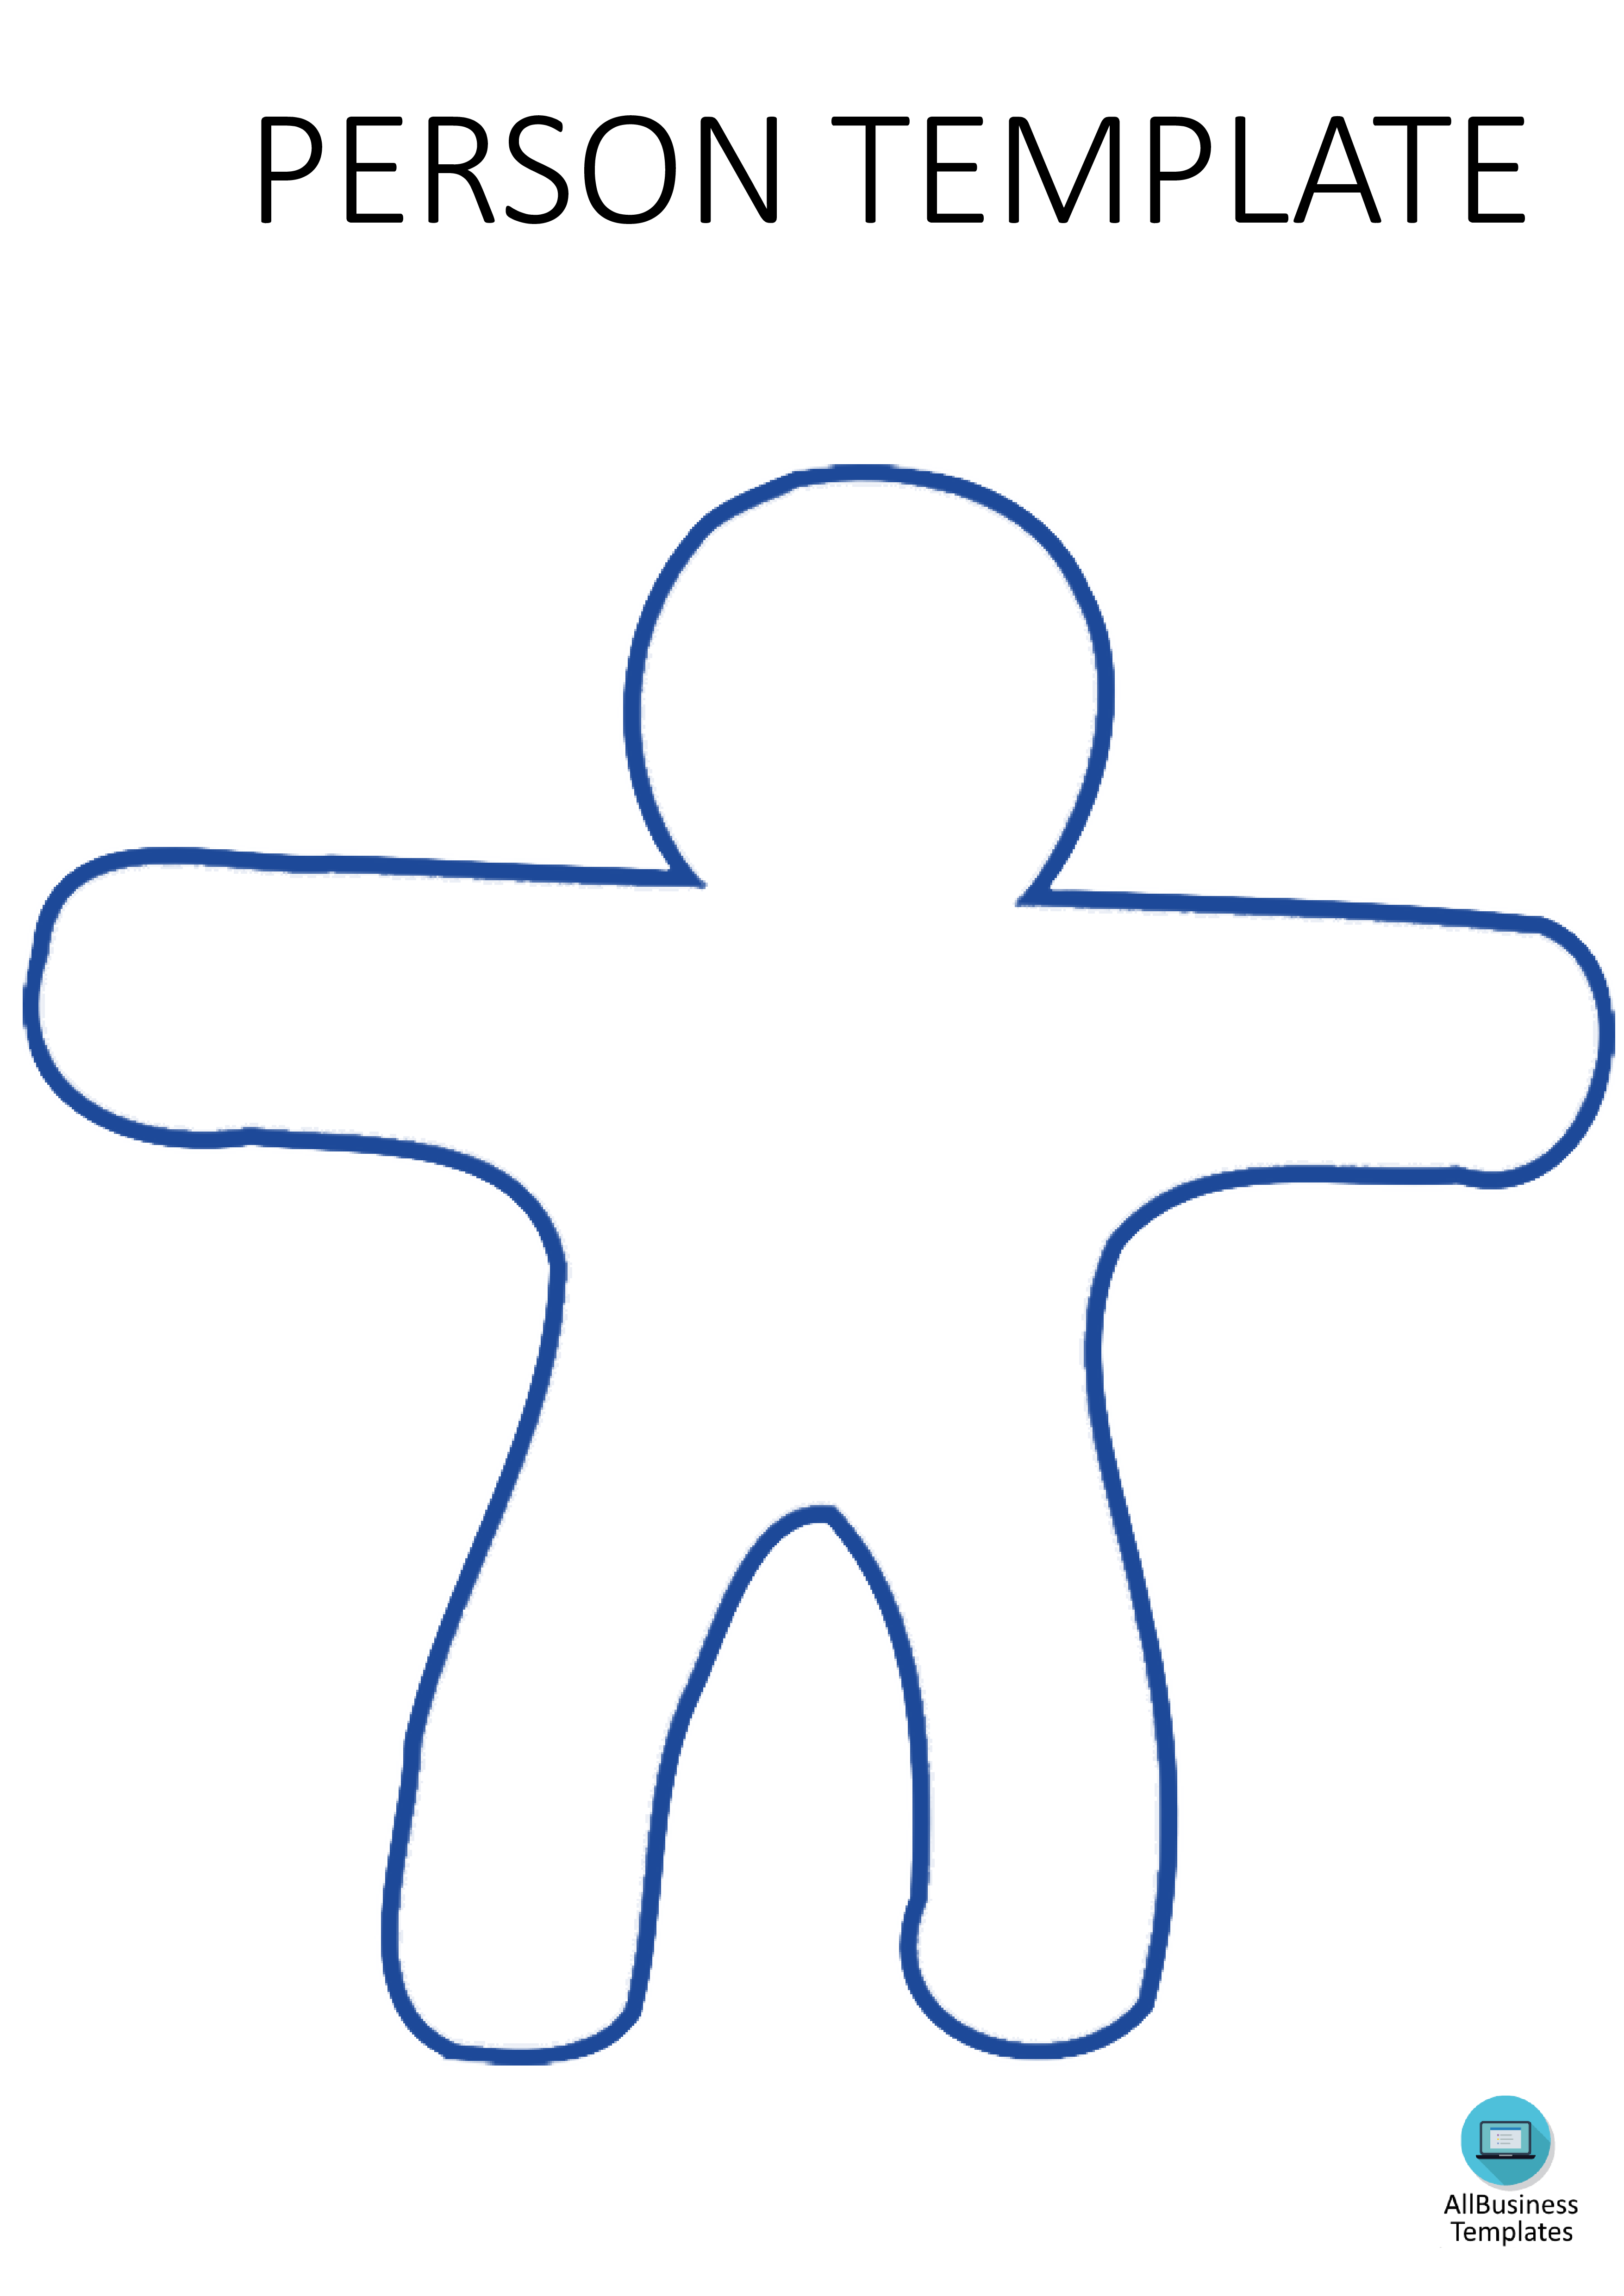 Person Template A3 Portrait - How to make a Person shape? Download this PDF Person shaped template in A4 size and portrait position now!